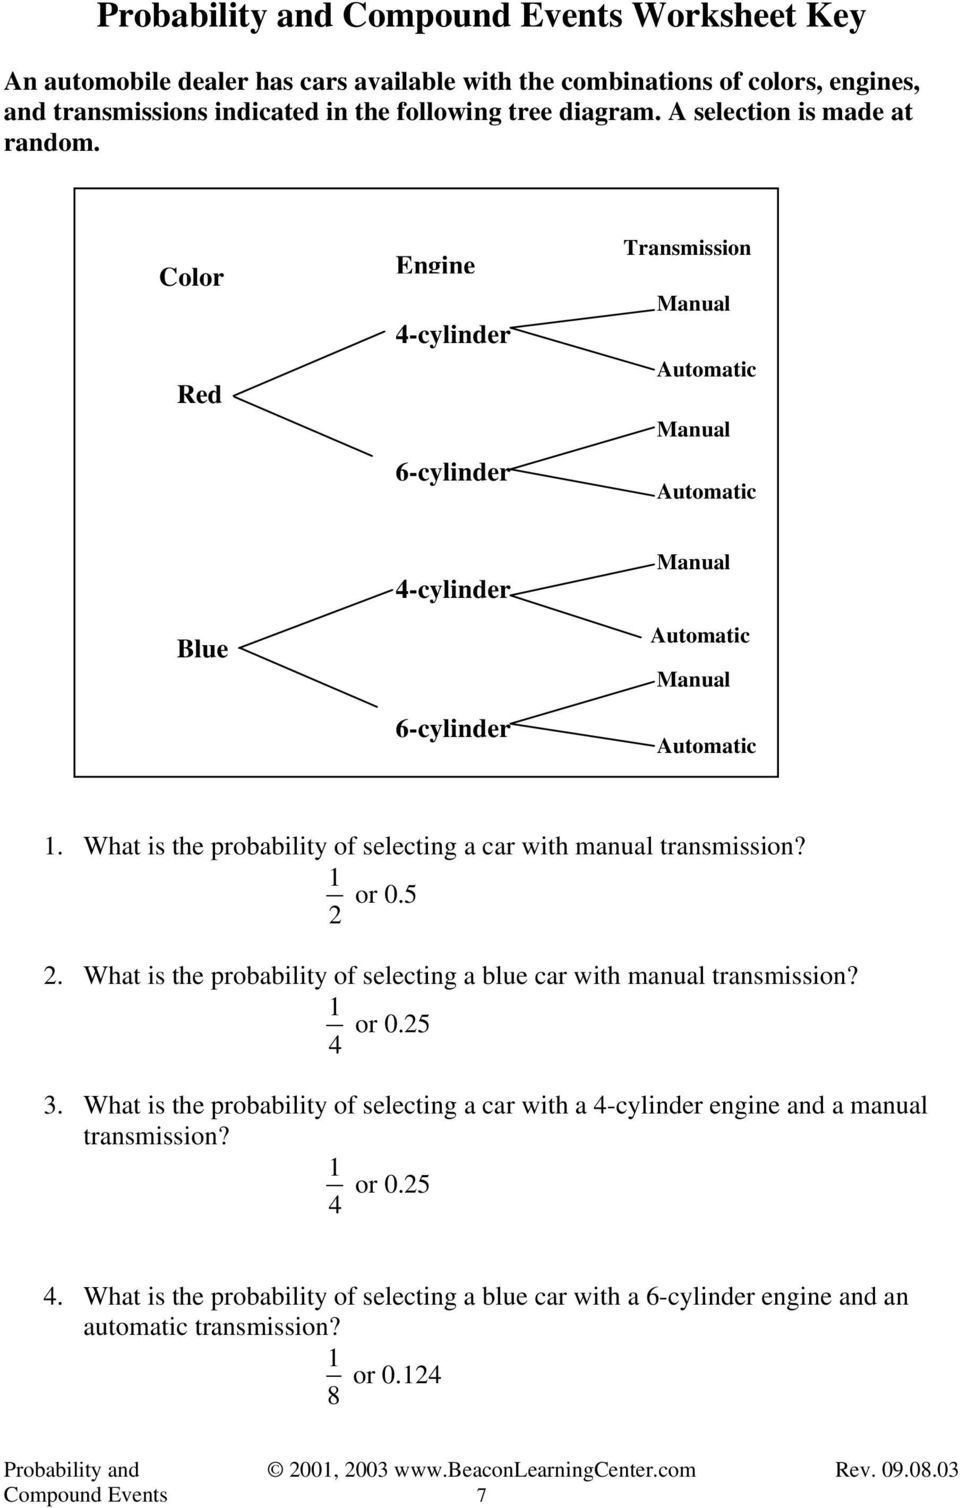 Probability and  pound Events Ex les   PDF as well Probability Of Events Worksheets Probabilities  pound Worksheet 4 moreover Grade 3 Math Probability Worksheets With Of  pound Events moreover pound events Worksheet   Siteraven likewise Probability Lessons on  pound Probability additionally Probability Lessons on  pound Probability further  also Statistics And Probability Worksheets Help Pages By Simple likewise  additionally Probability Pound events Worksheet 7th Grade Elegant – Siteraven in addition  furthermore  besides  likewise  furthermore Probability    pound Events Worksheet for 7th   9th Grade   Lesson together with . on probability and compound events worksheet